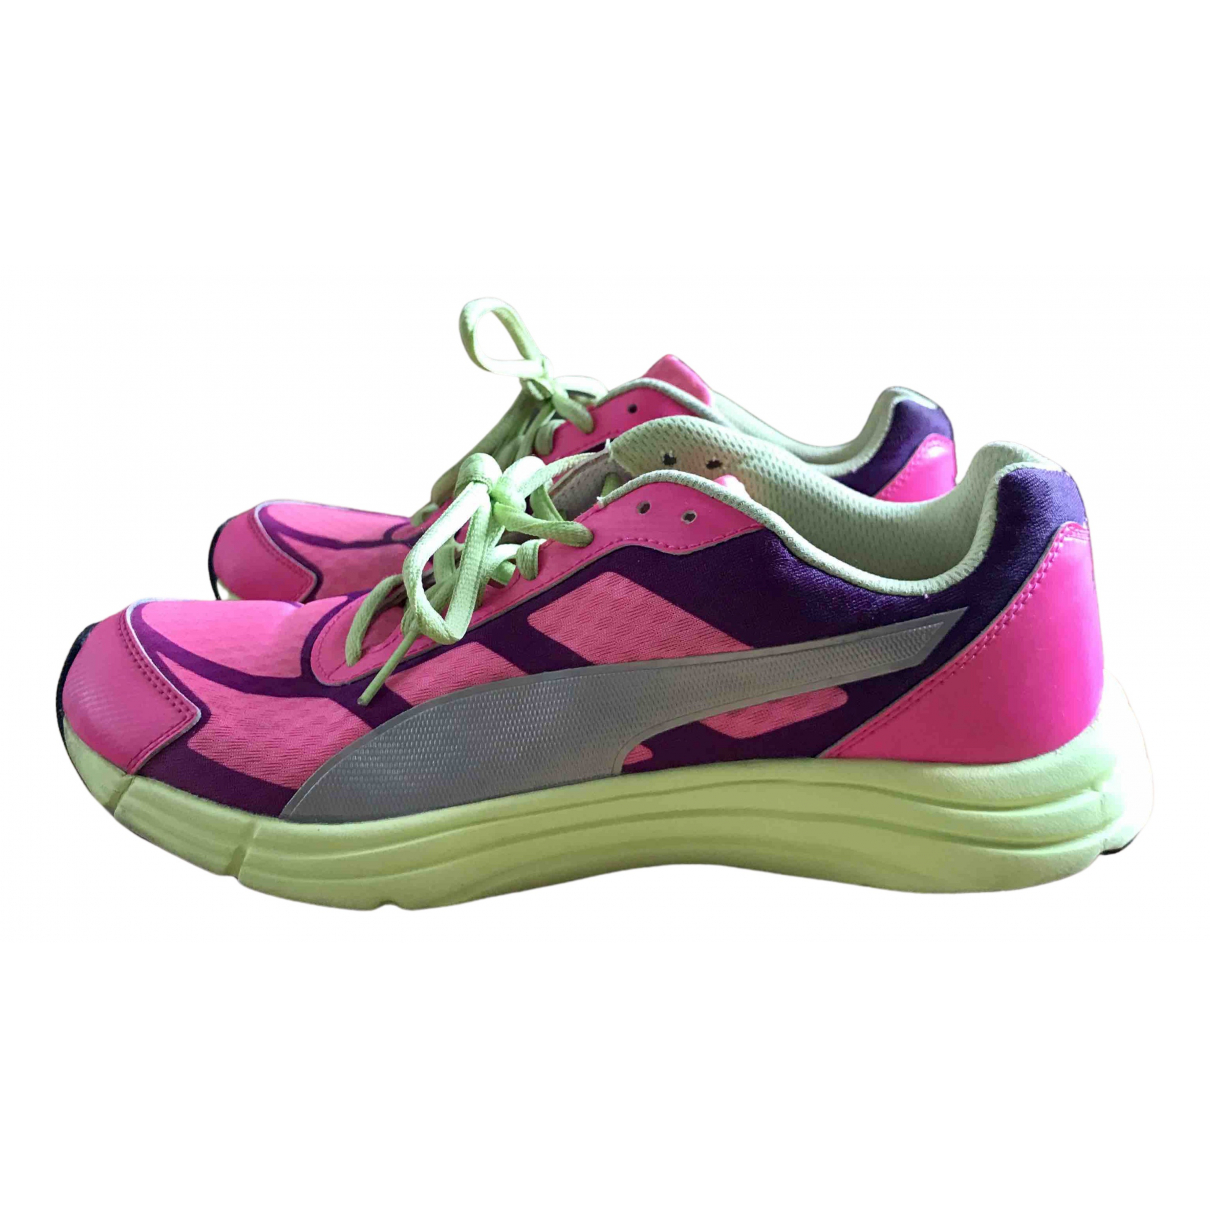 Puma N Pink Rubber Trainers for Women 38 EU